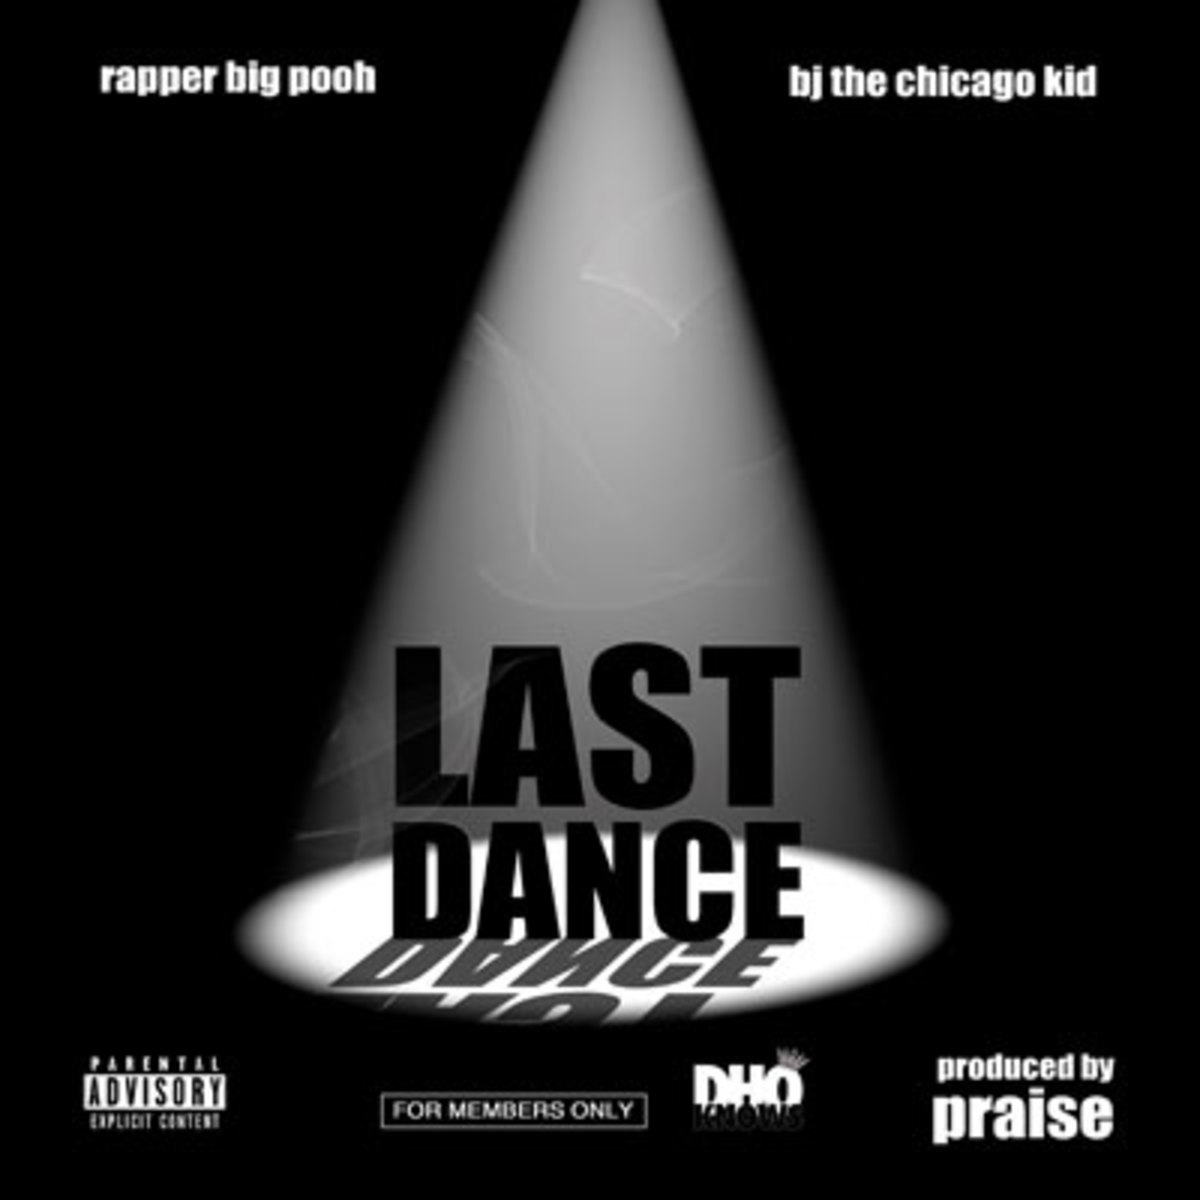 rapperpooh-lastdance.jpg